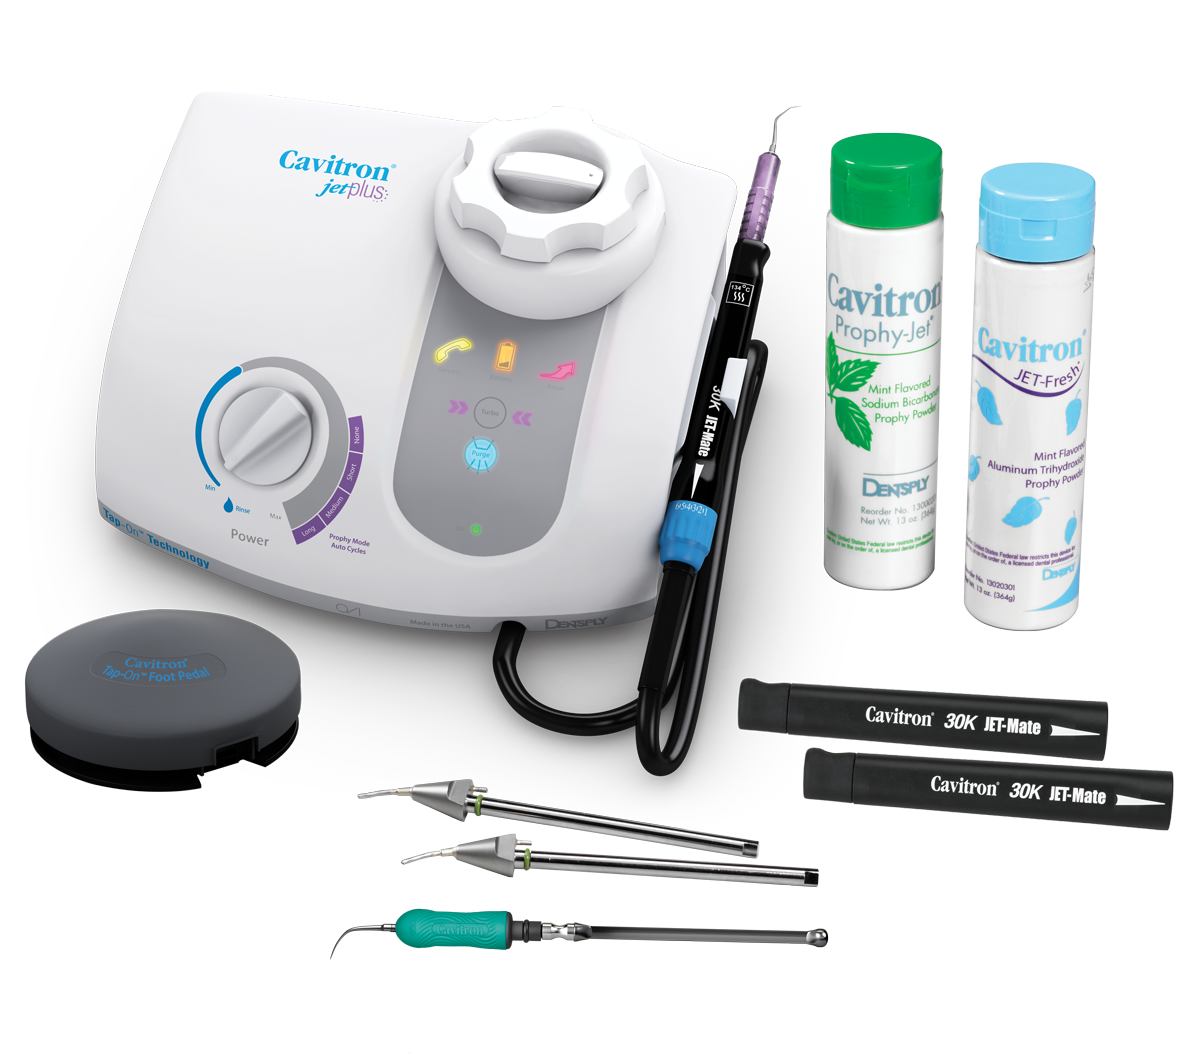 Cavitron JET Plus Ultrasonic Scaler